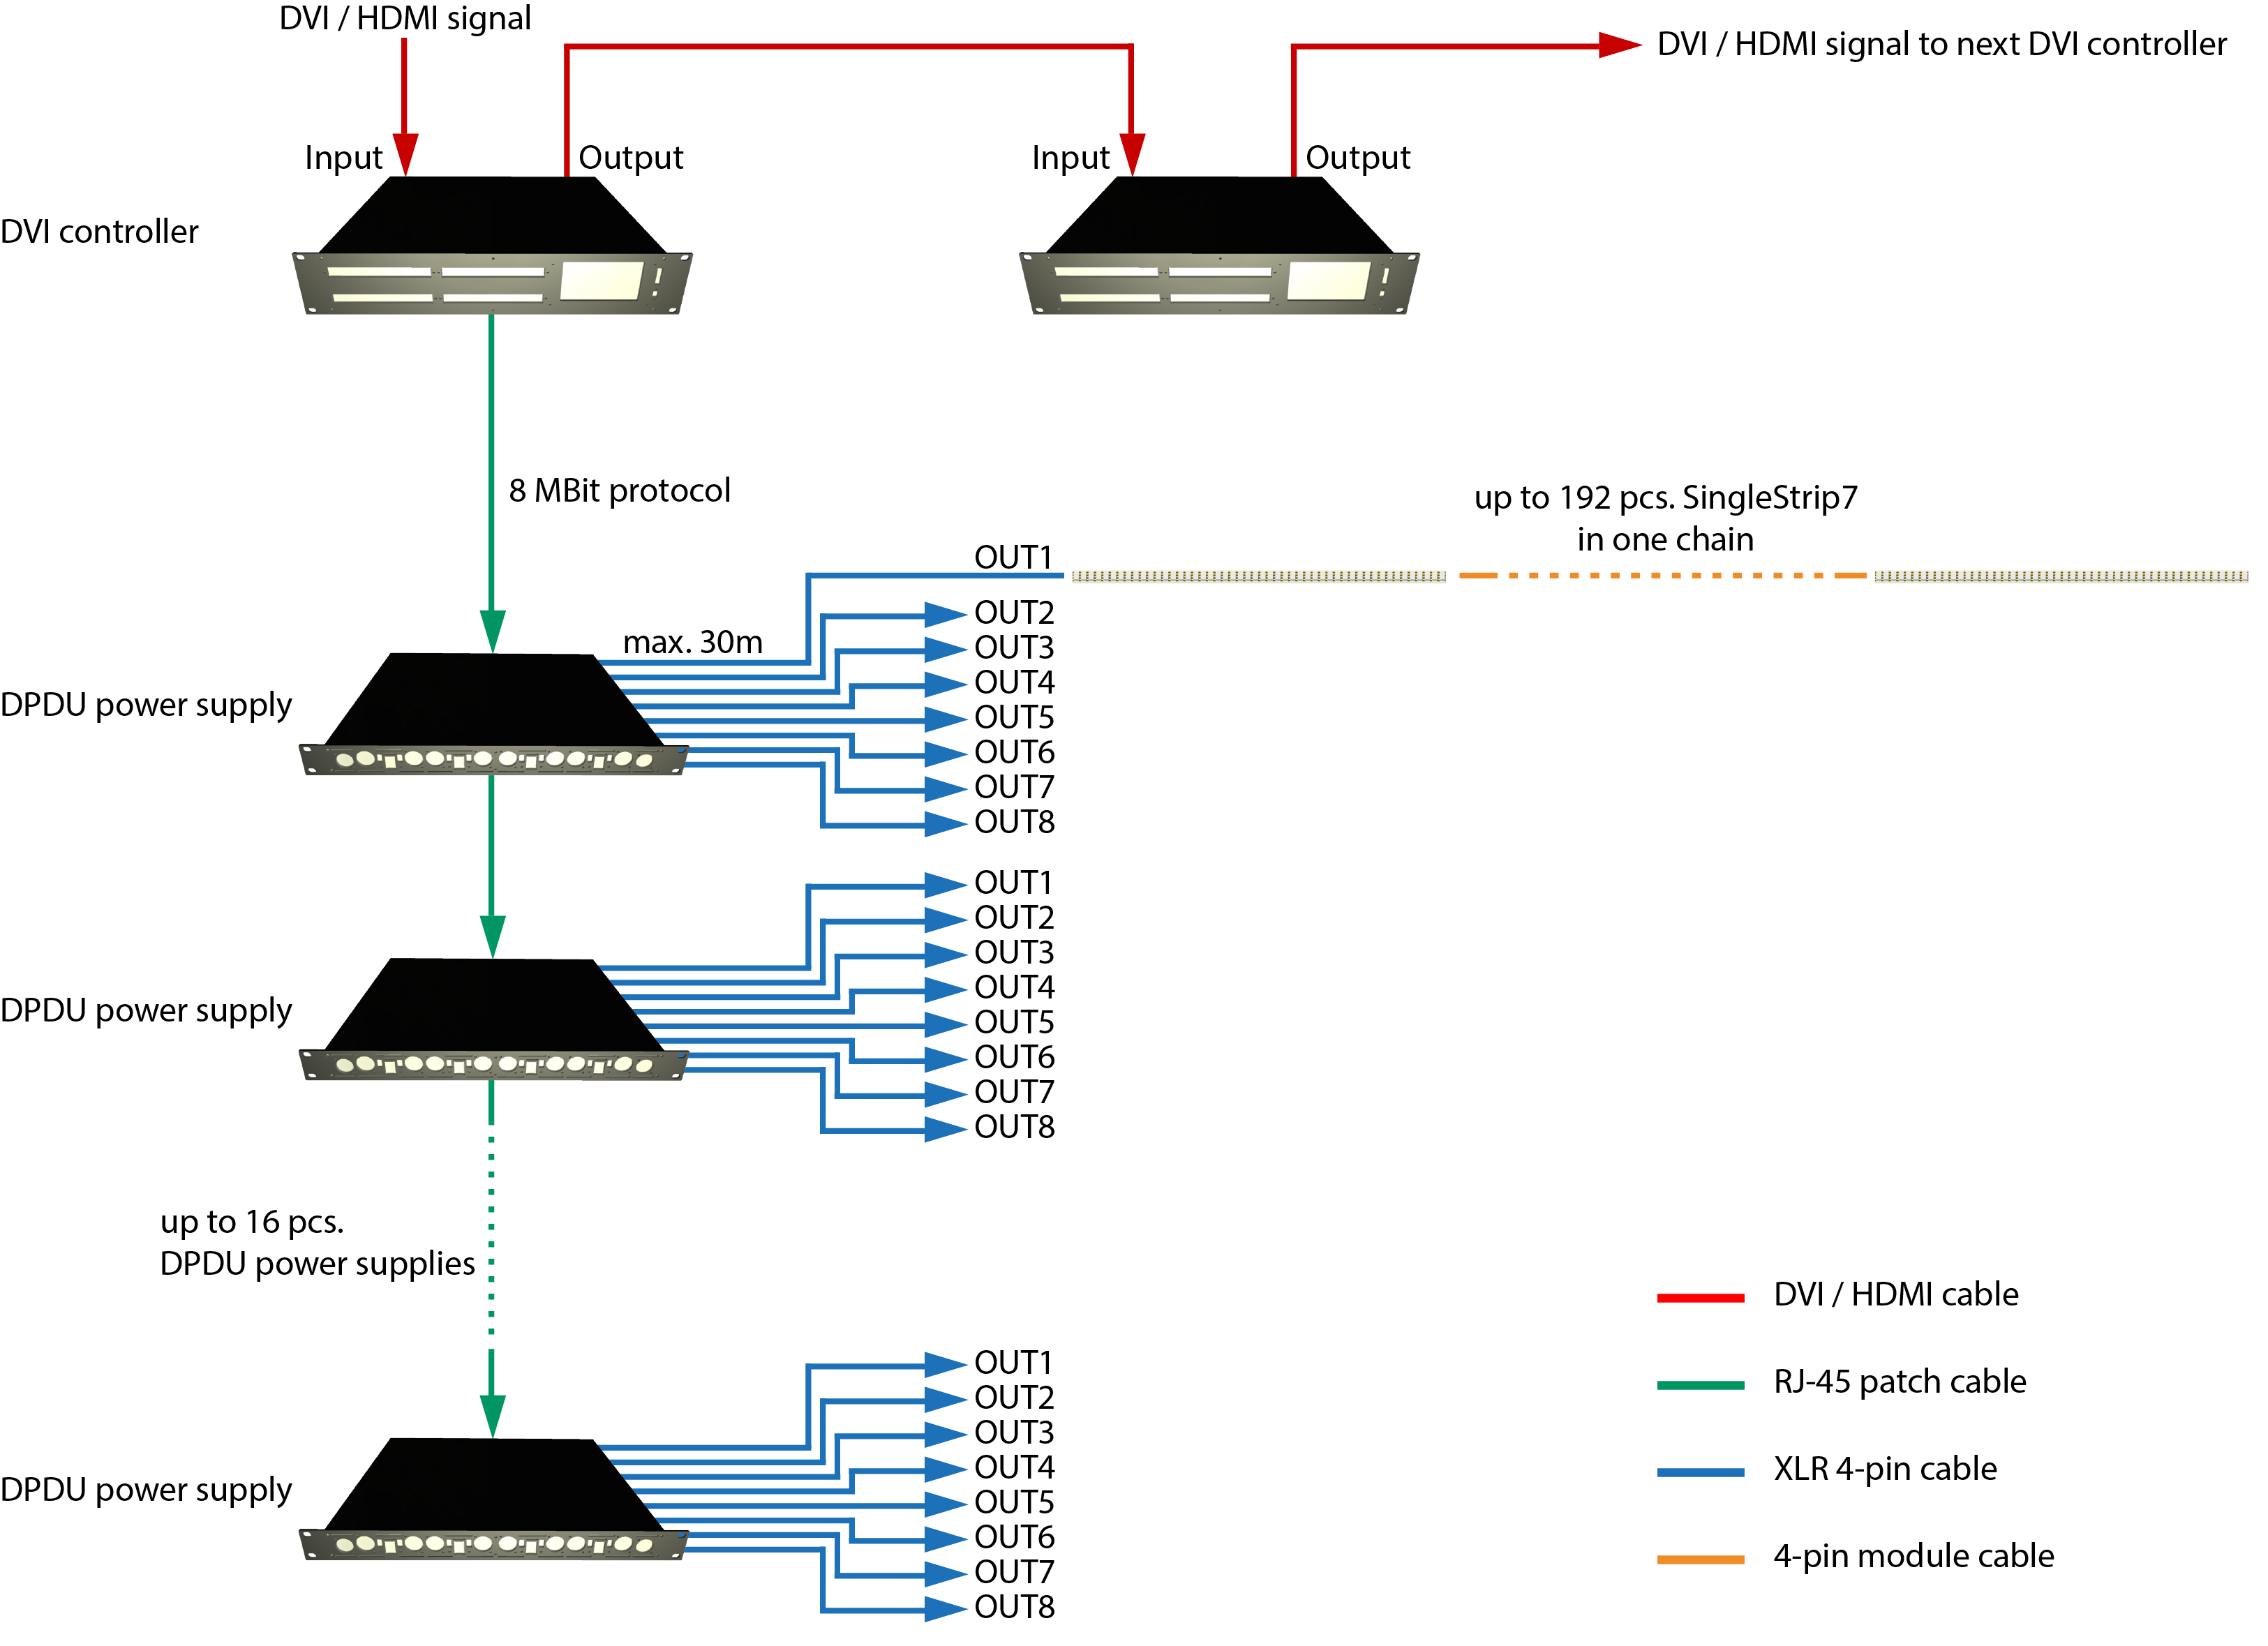 System diagram of a typical SingleStrip7™ LED video installation